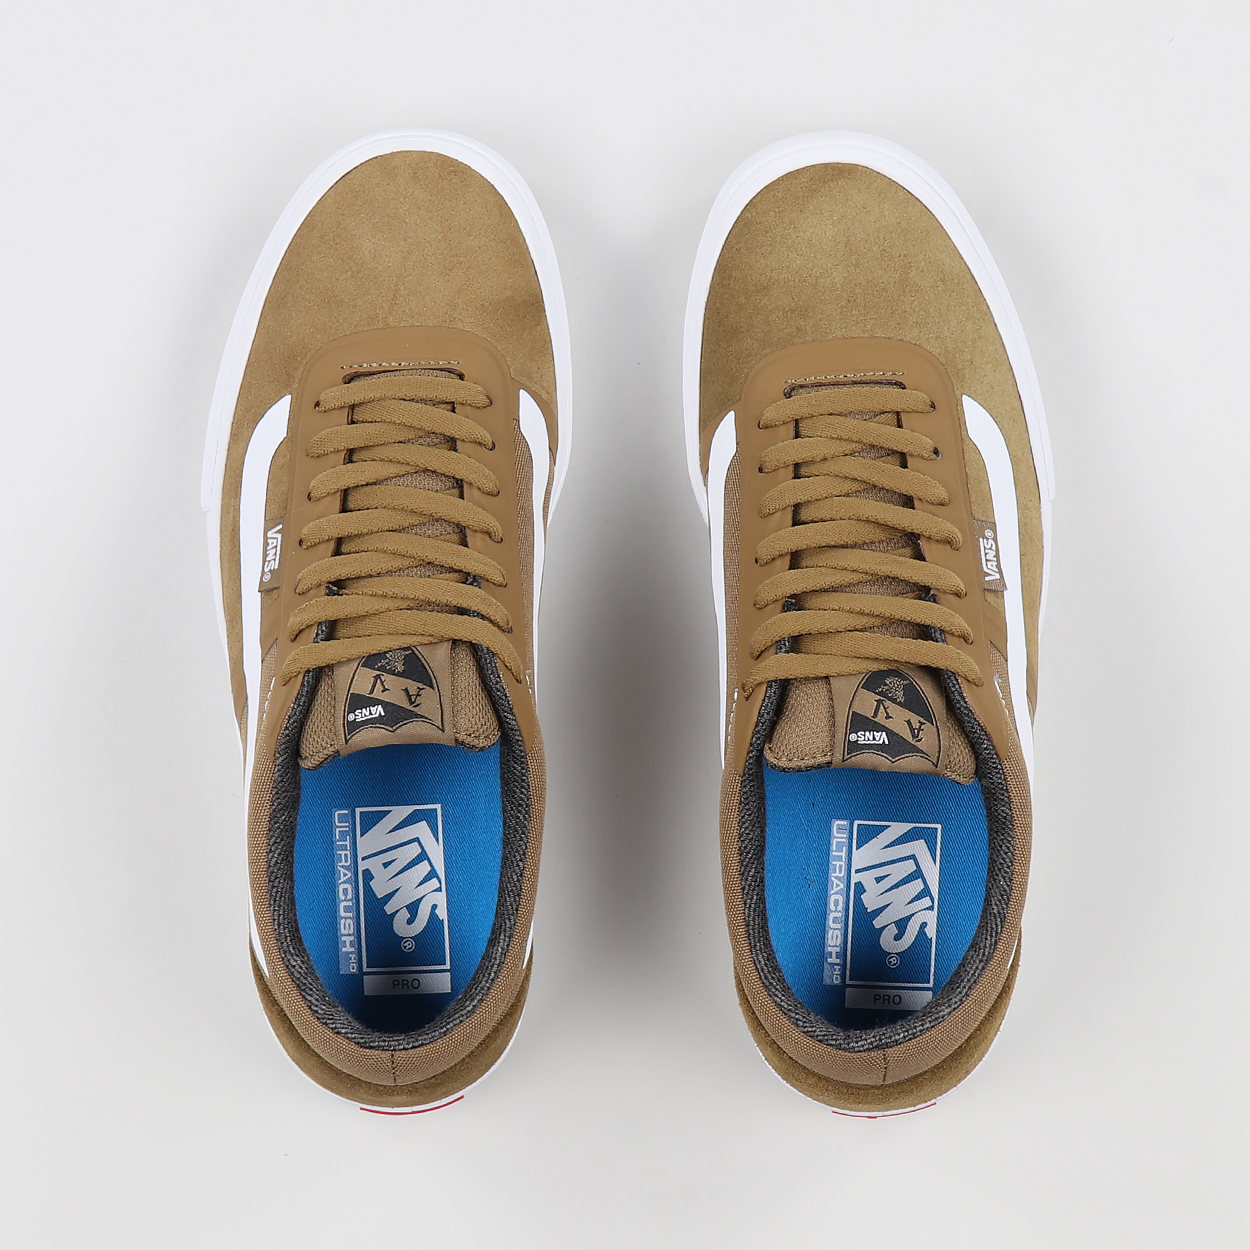 03286476d7 The classic sillhouette of the AV RapidWeld Pro model with strong canvas and  suede uppers